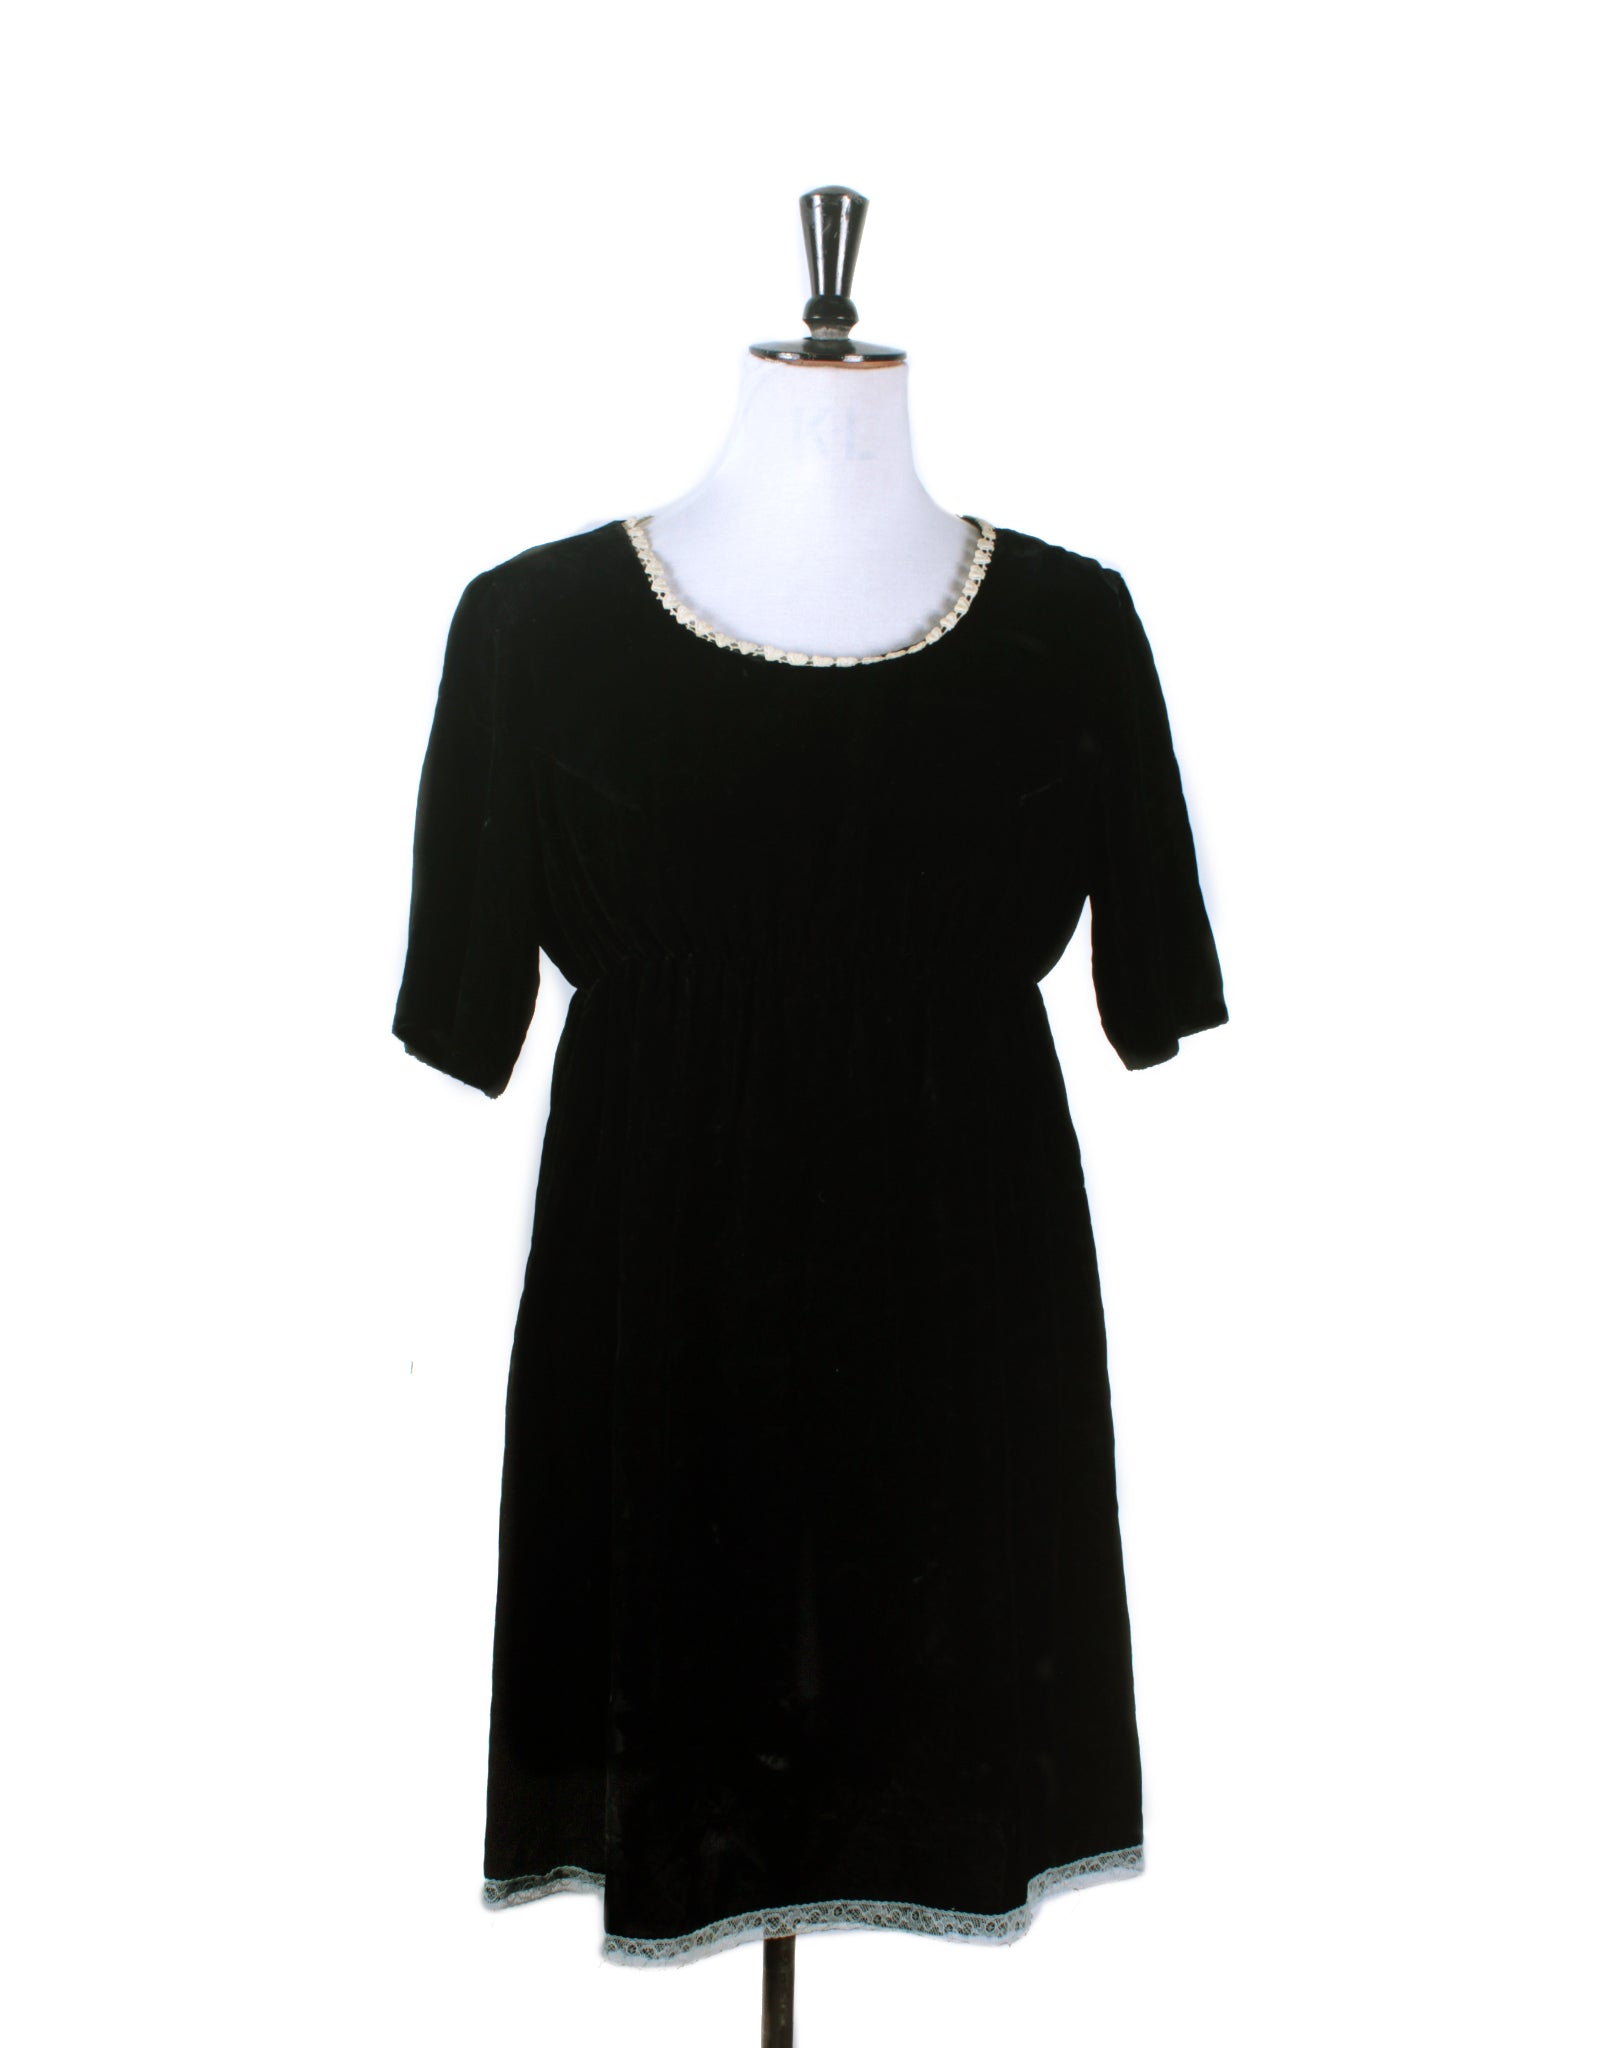 Vintage 60's Black Velvet Mini Dress